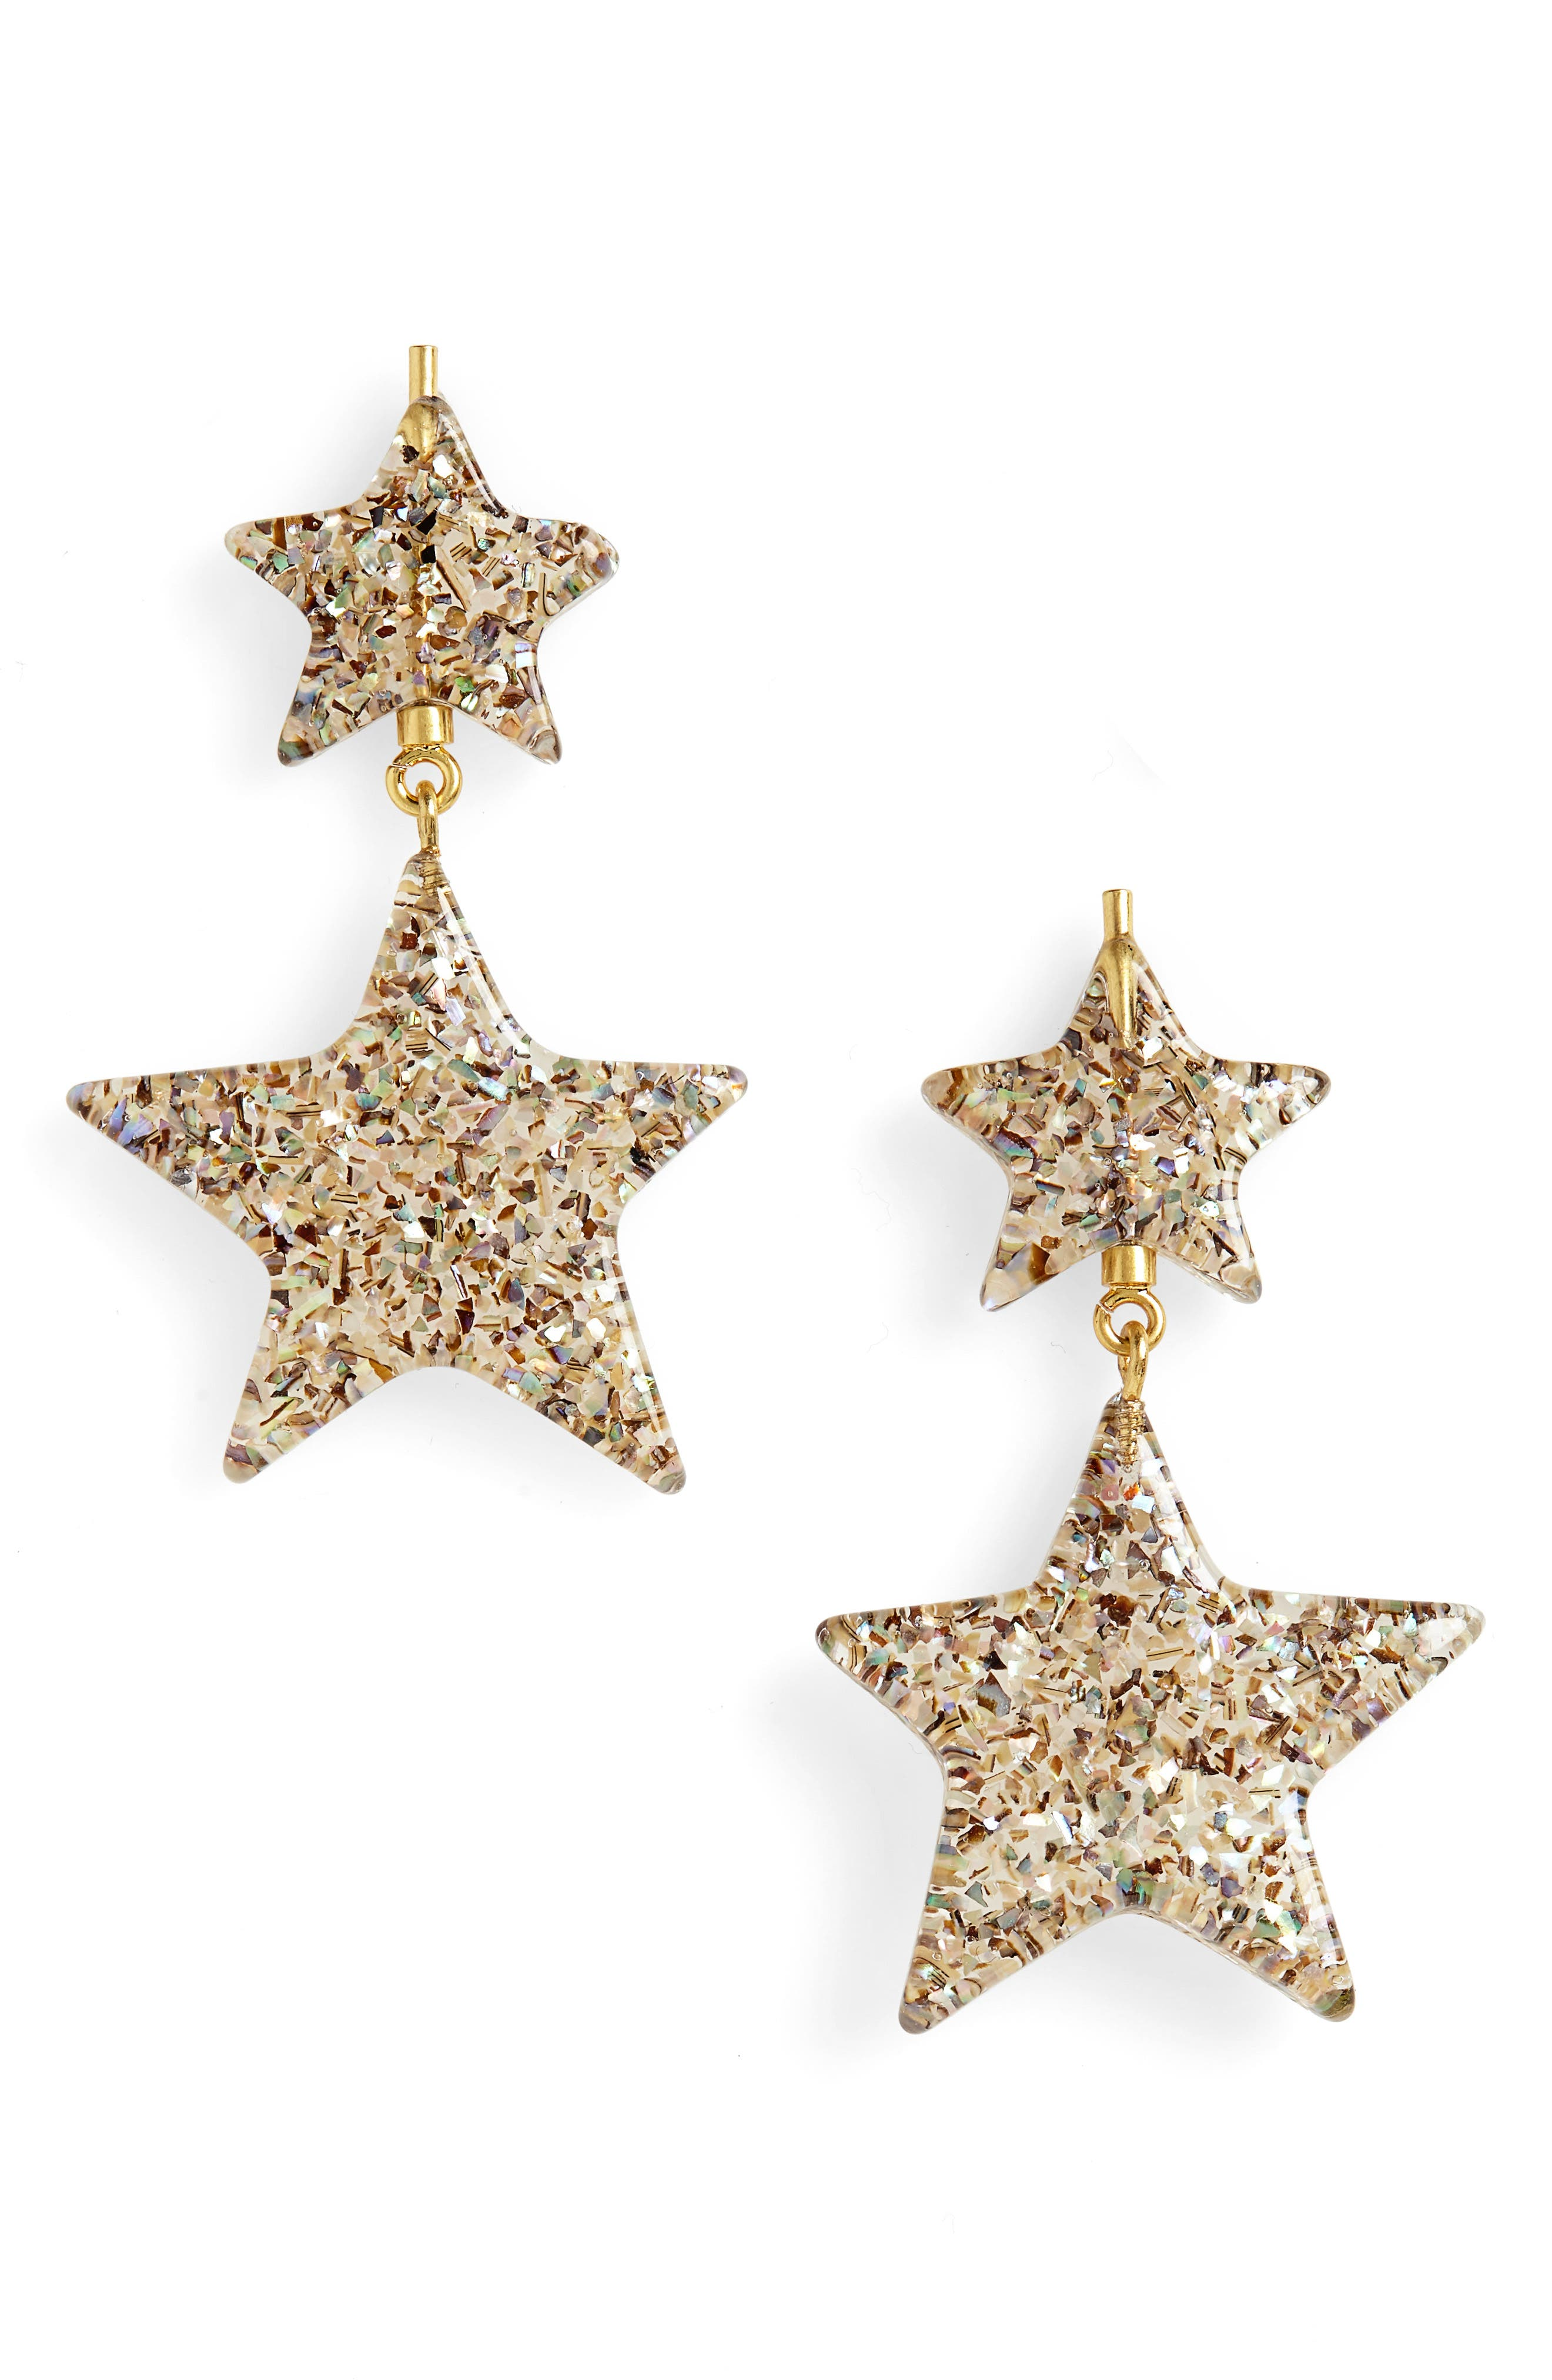 Glitter Star Statement Earrings,                             Main thumbnail 1, color,                             IRIDESCENT